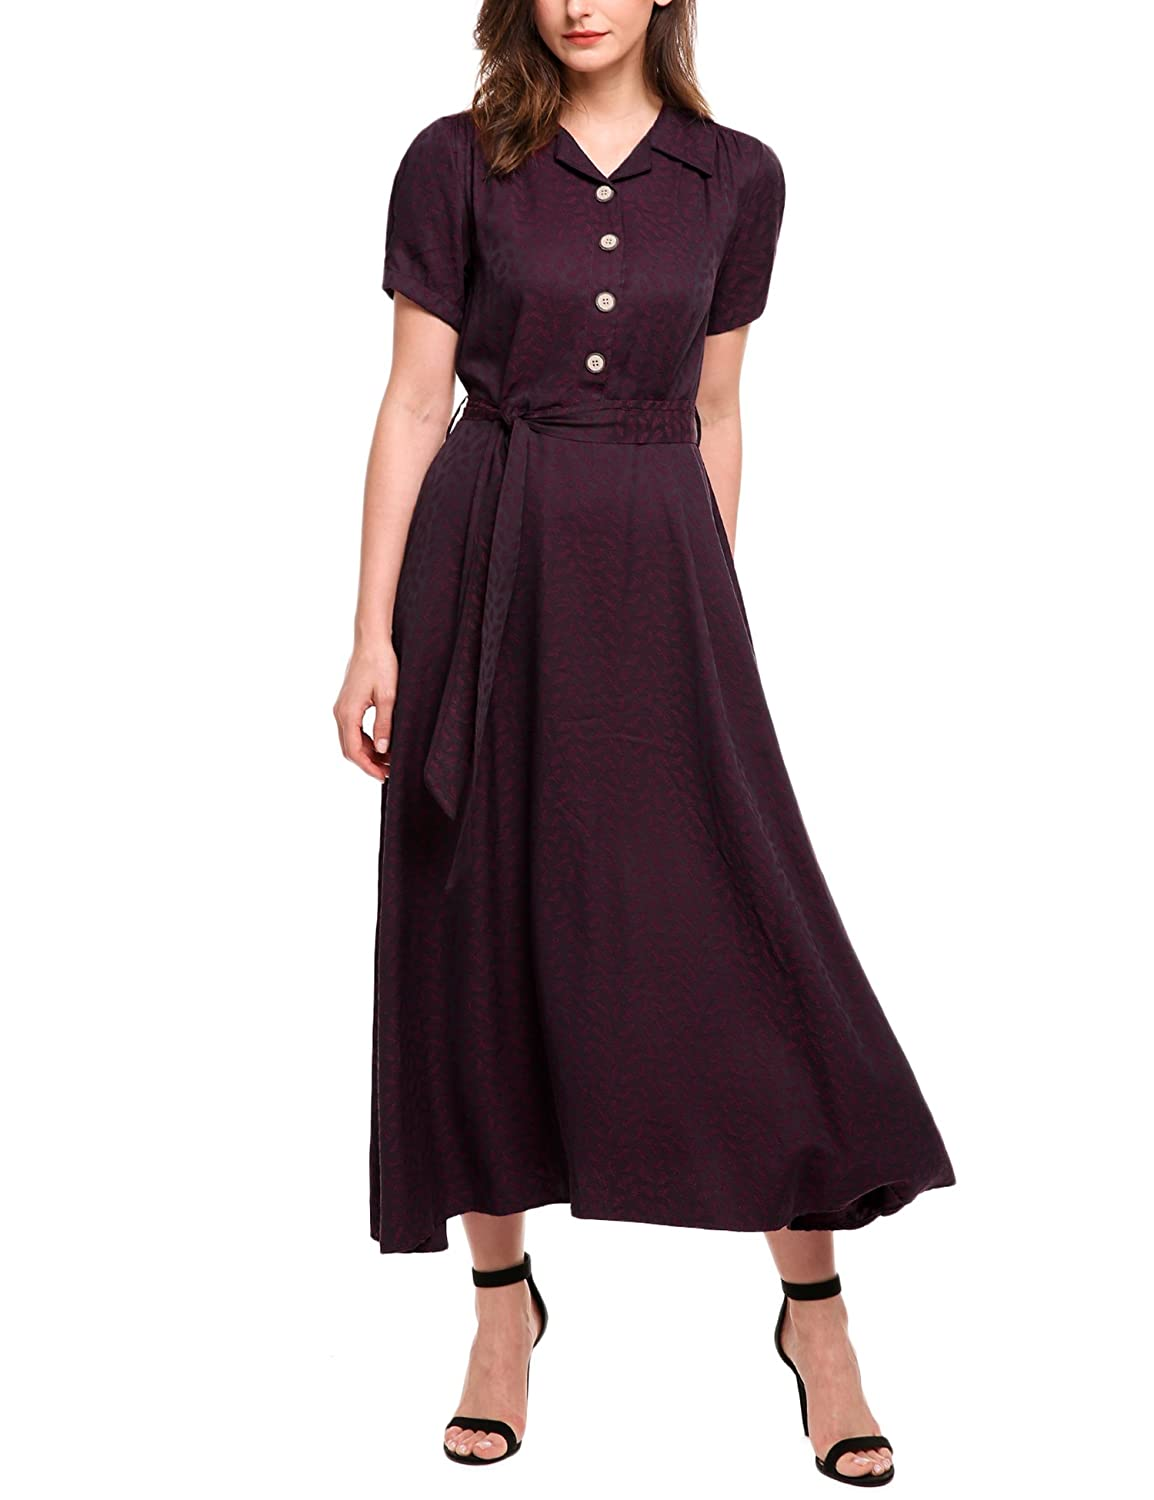 1940s Dress Styles ACEVOG Women Vintage Style Turn Down Collar Short Sleeve High Waist Maxi Swing Dress with Belt $38.99 AT vintagedancer.com